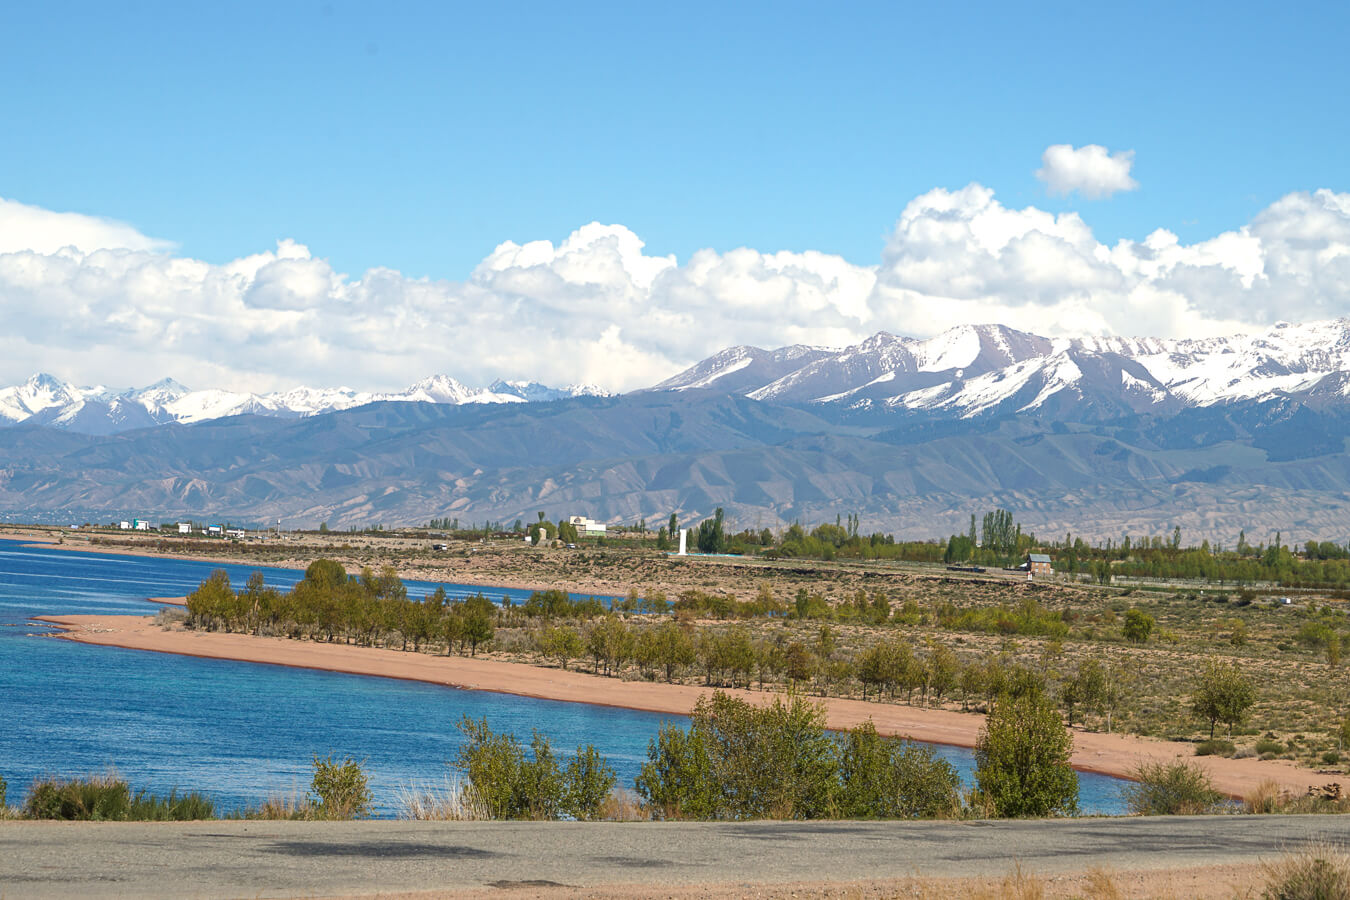 Issyk Kul lake in Central Asia